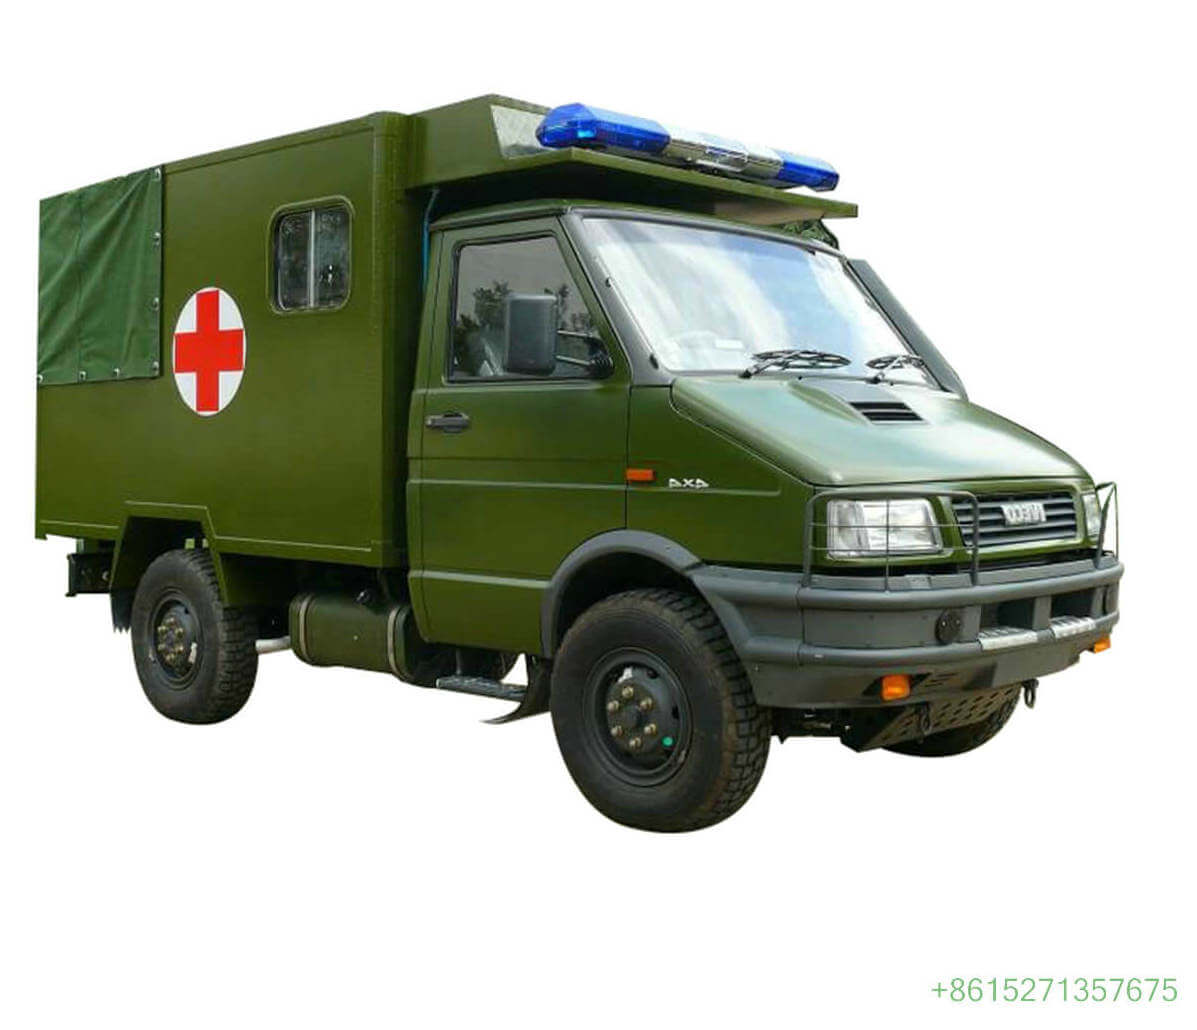 IVECO Offroad Clinic Mobile Medical Health And Epidemic Prevention Vehiclel Customizing